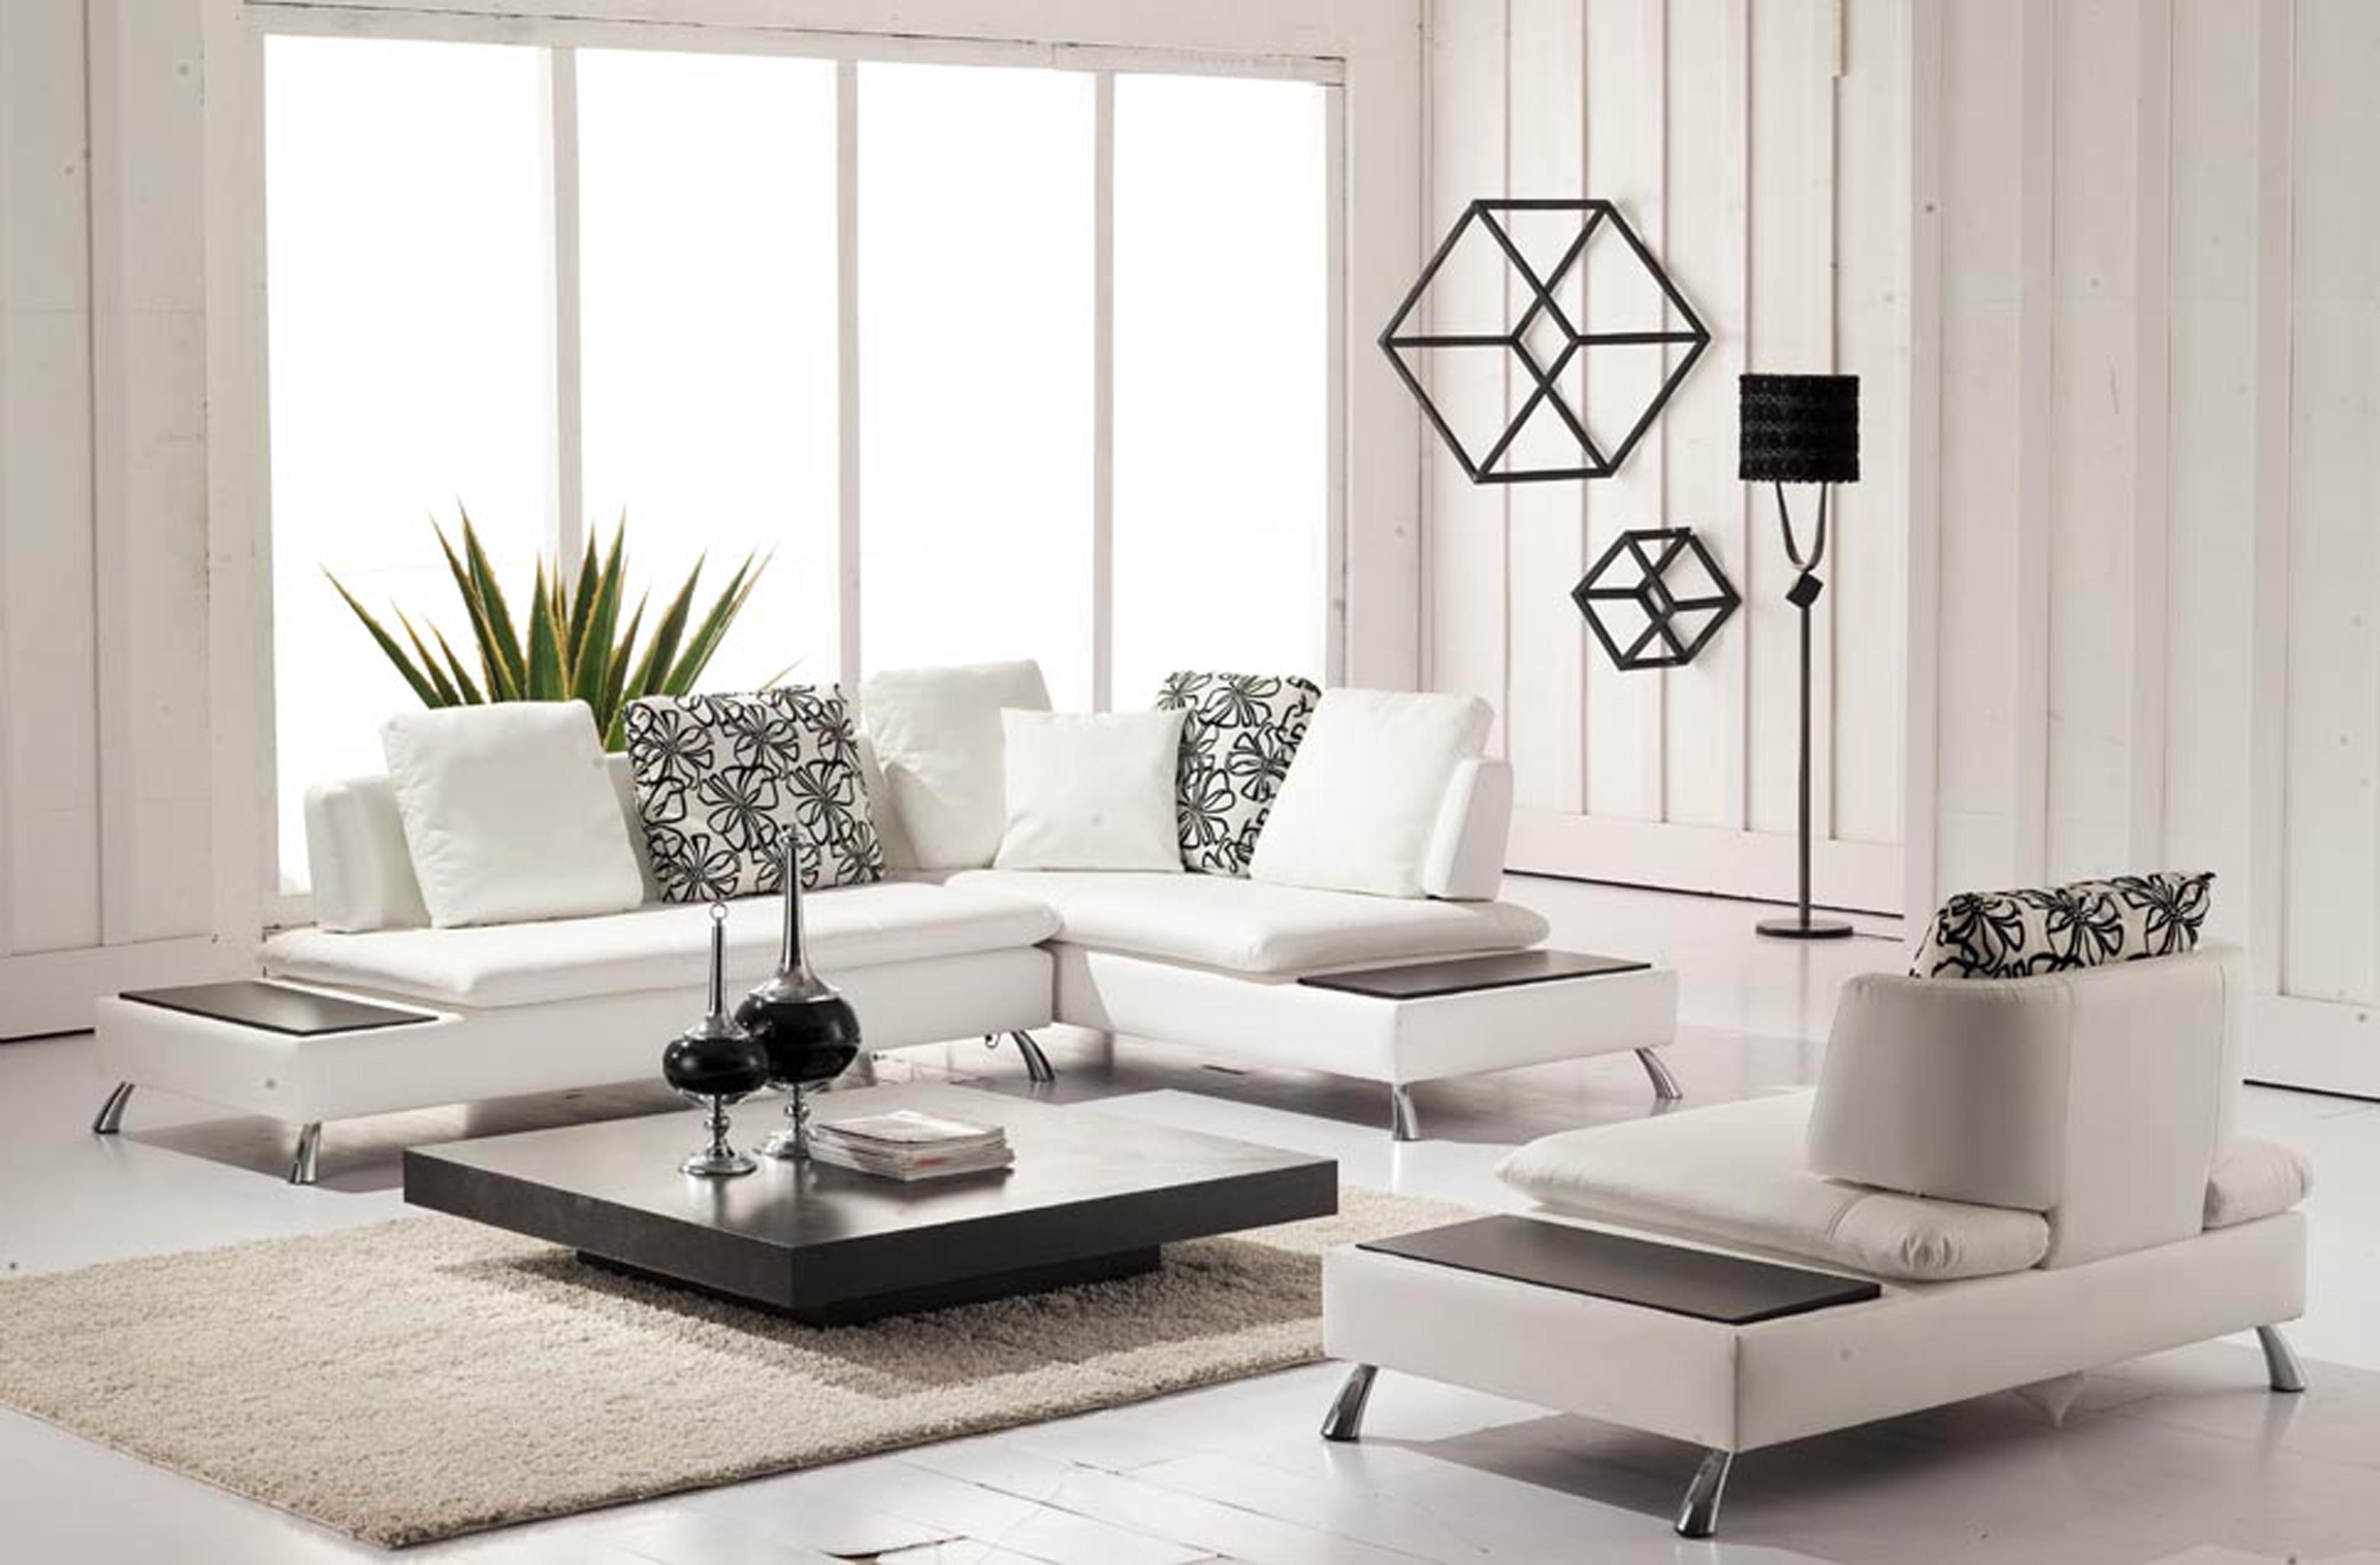 2017 Inexpensive Sectional Sofas For Small Spaces Inside Inexpensive Leather Sectional Sofa For Small Apartment Layout With (View 13 of 15)